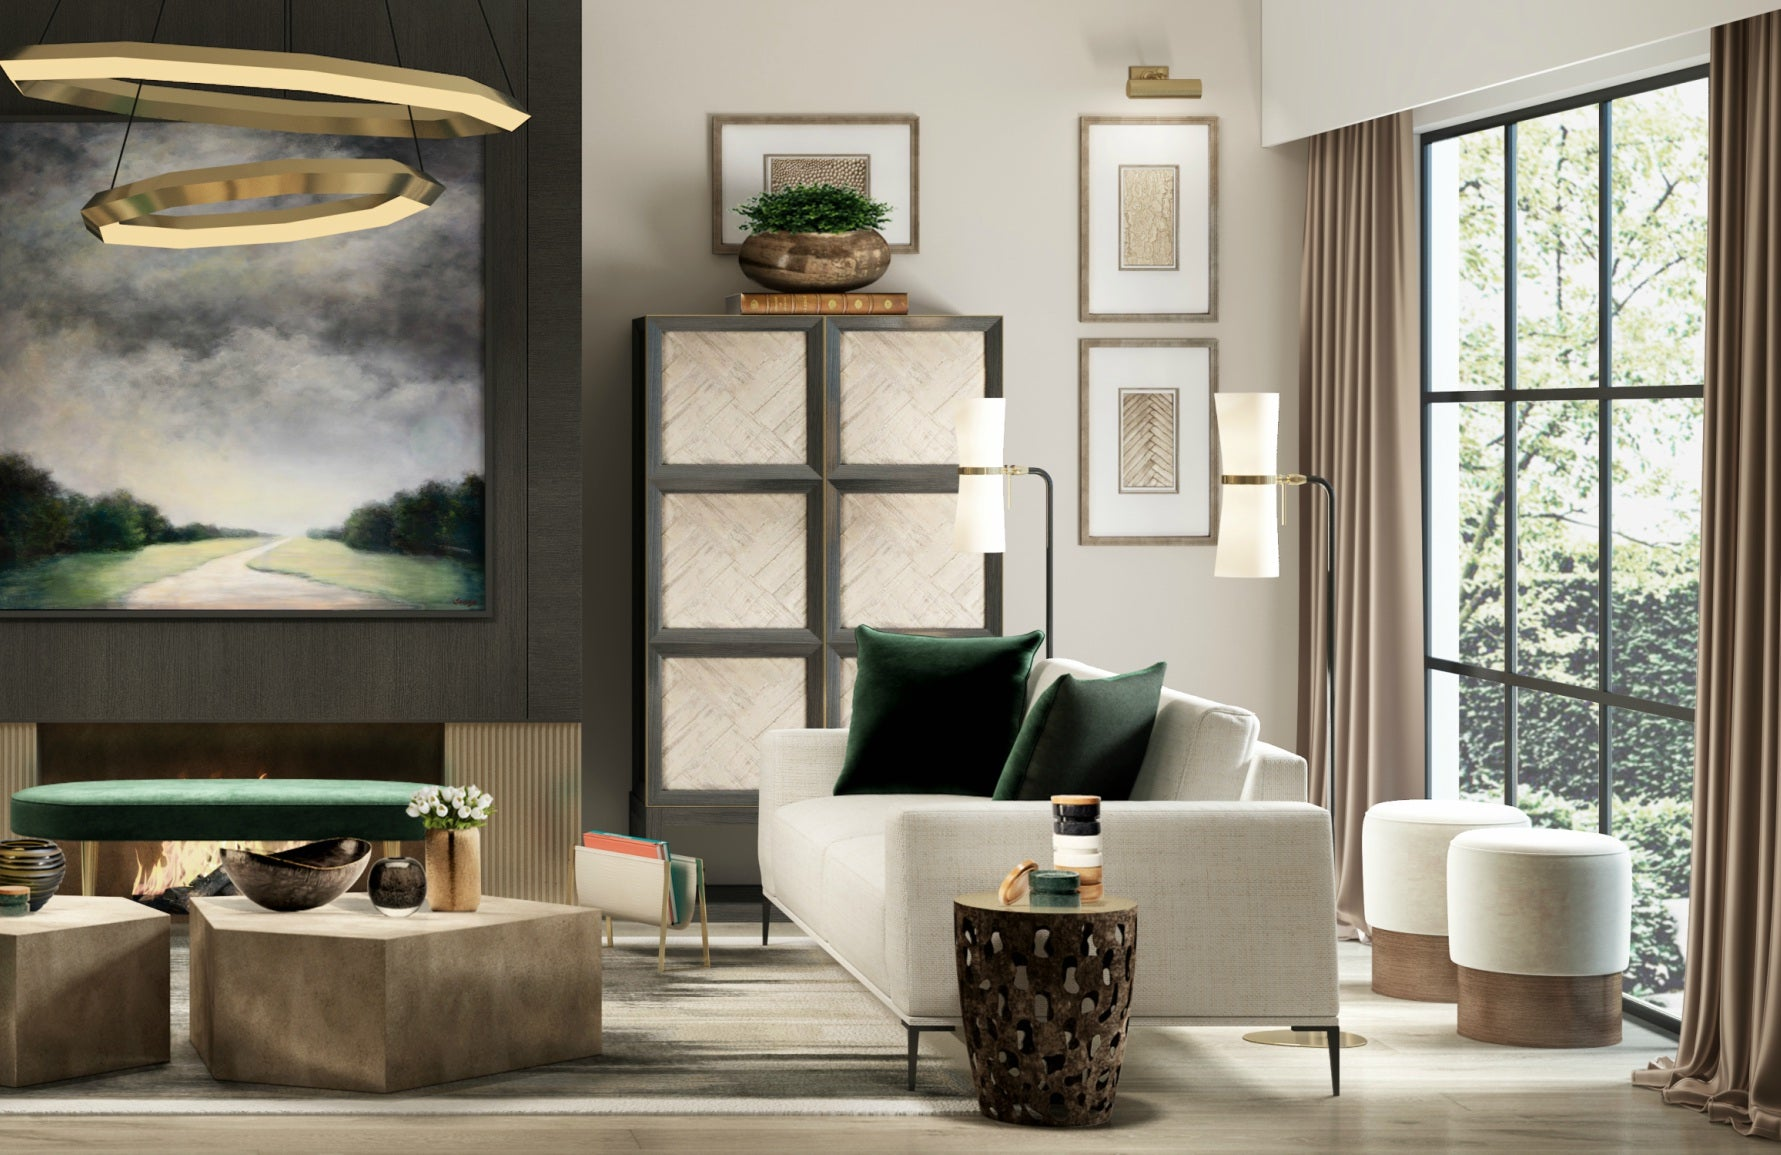 Get The Look | Wimbledon Collection | Modern Bedroom Design | Shop the look at LuxDeco.com